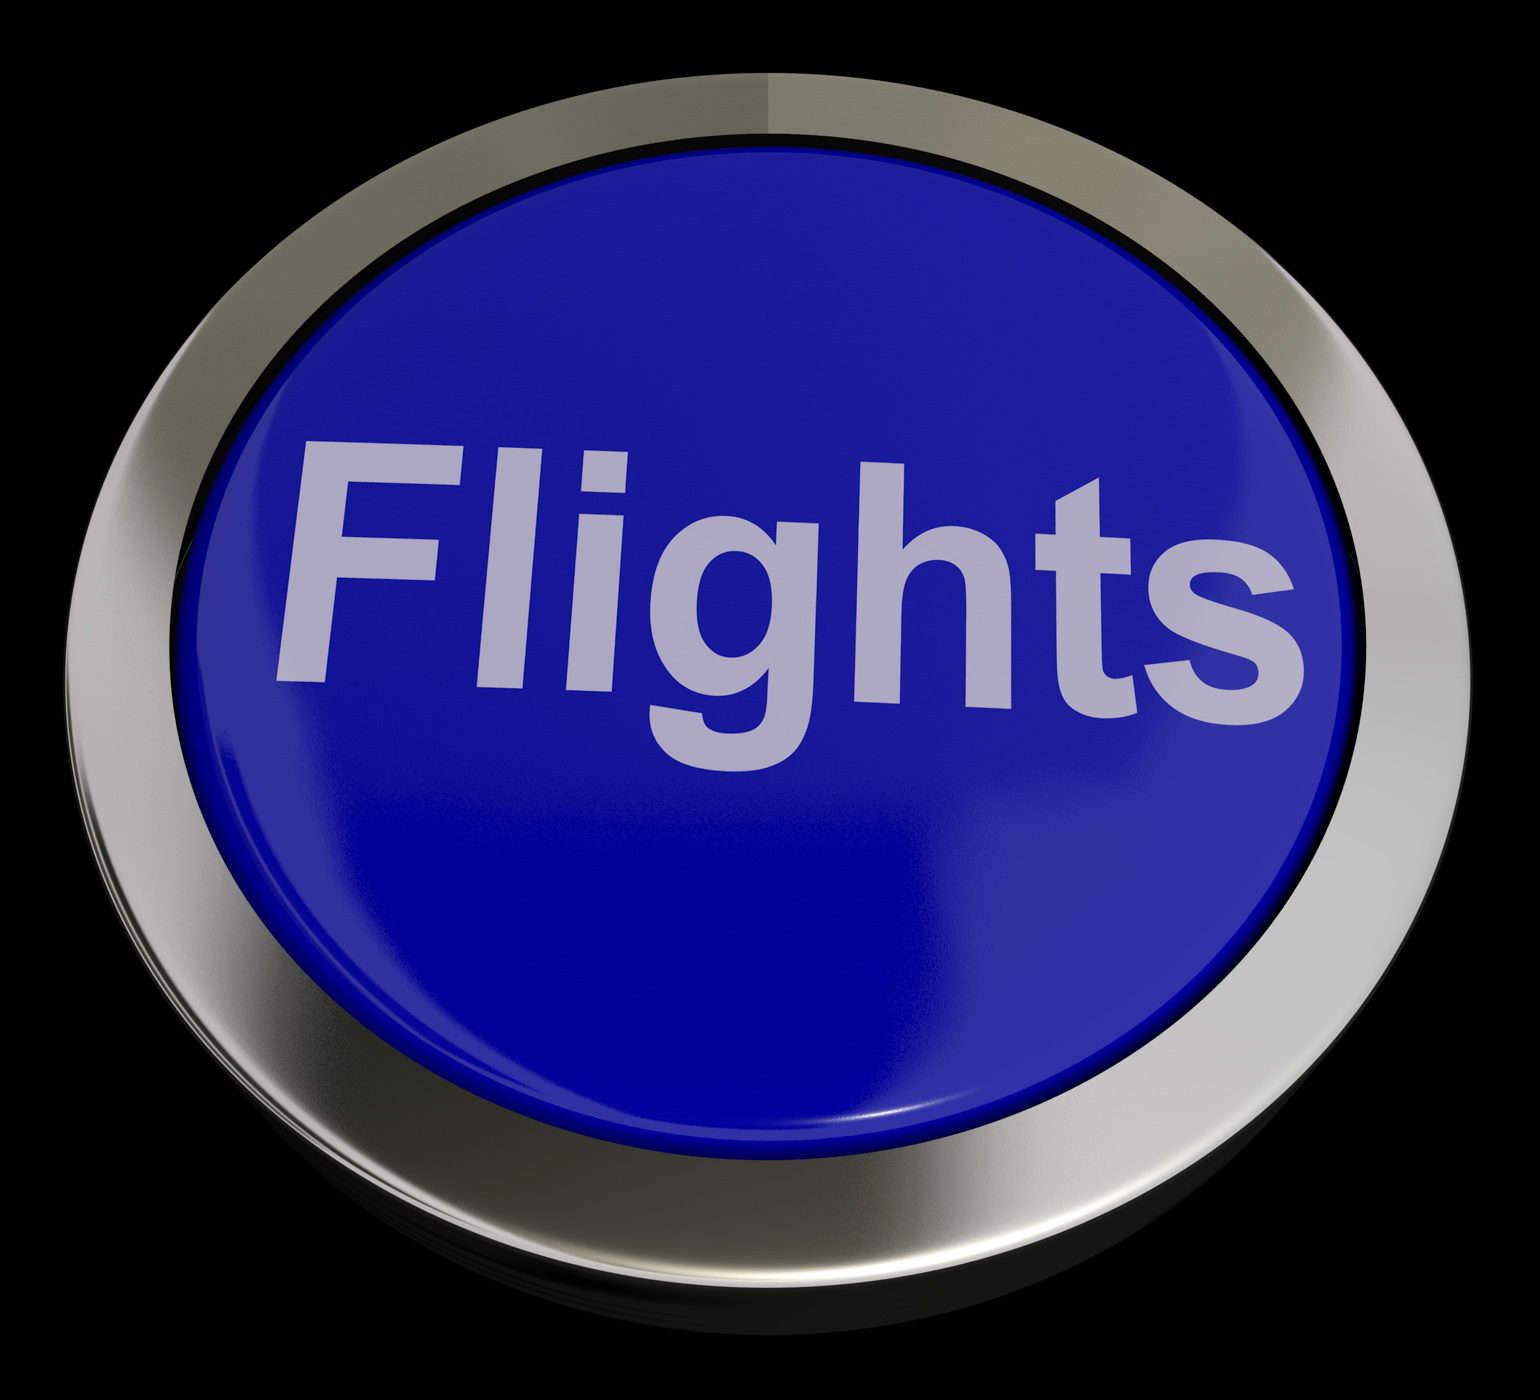 Flights button in blue for overseas vacation or holiday photo